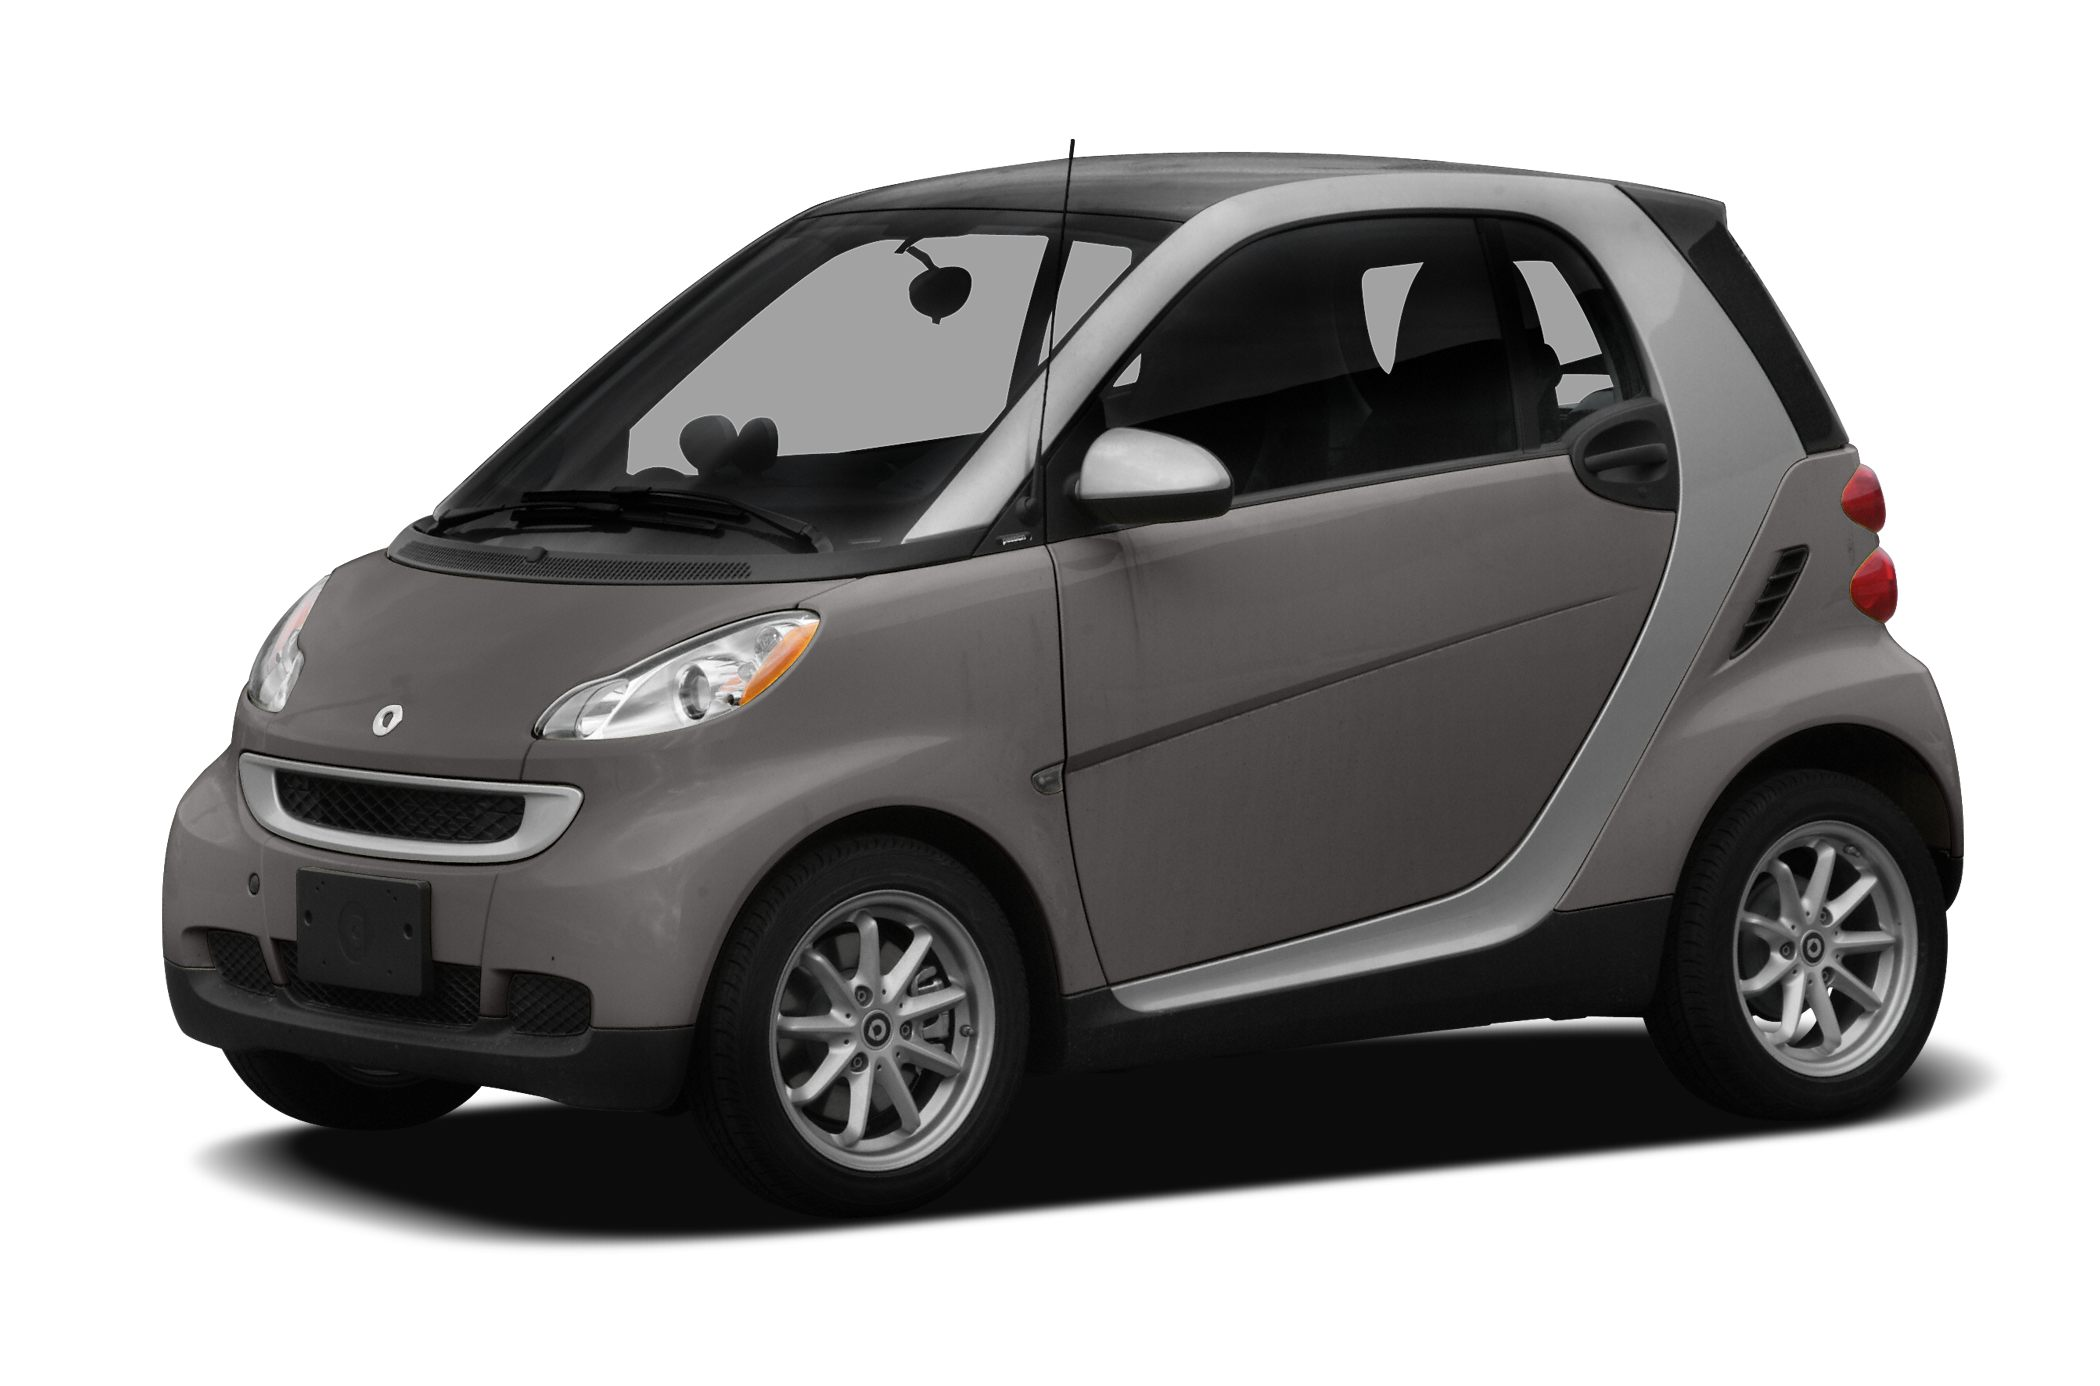 2009 Smart ForTwo Pure Coupe for sale in Rock Hill for $7,999 with 47,946 miles.